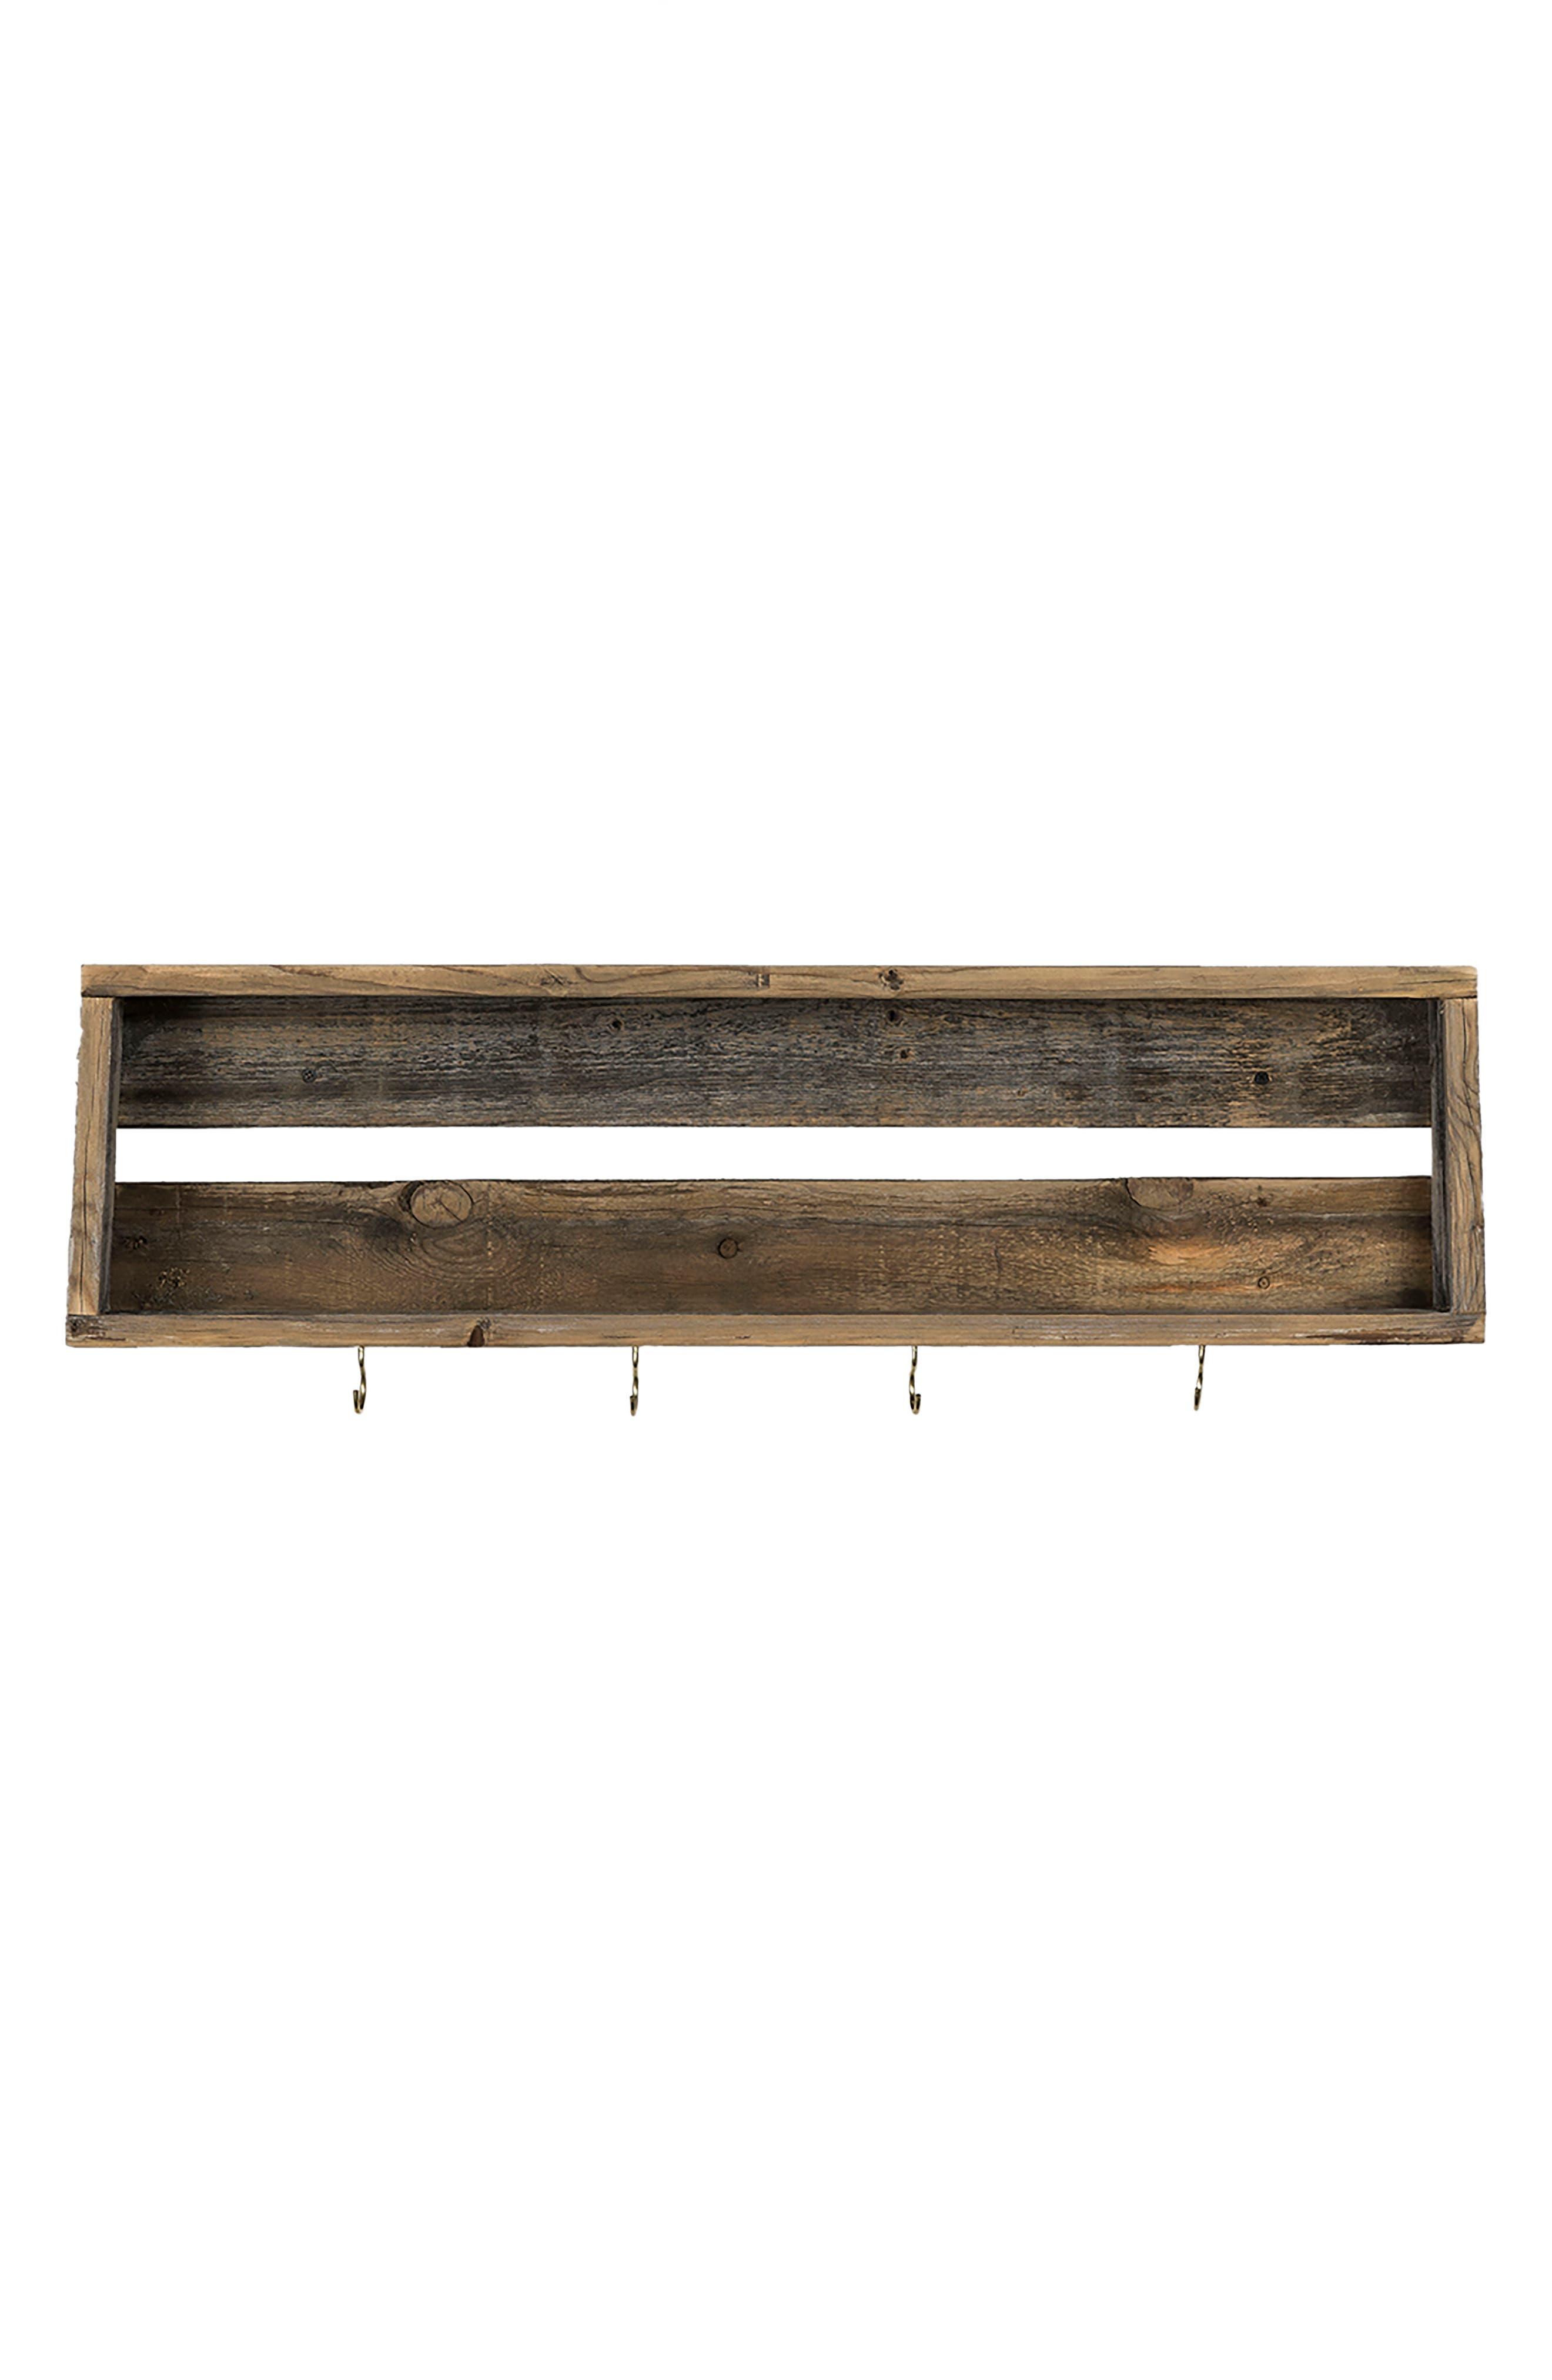 Repurposed Wood Shelf with Hooks,                             Main thumbnail 1, color,                             Barnwood